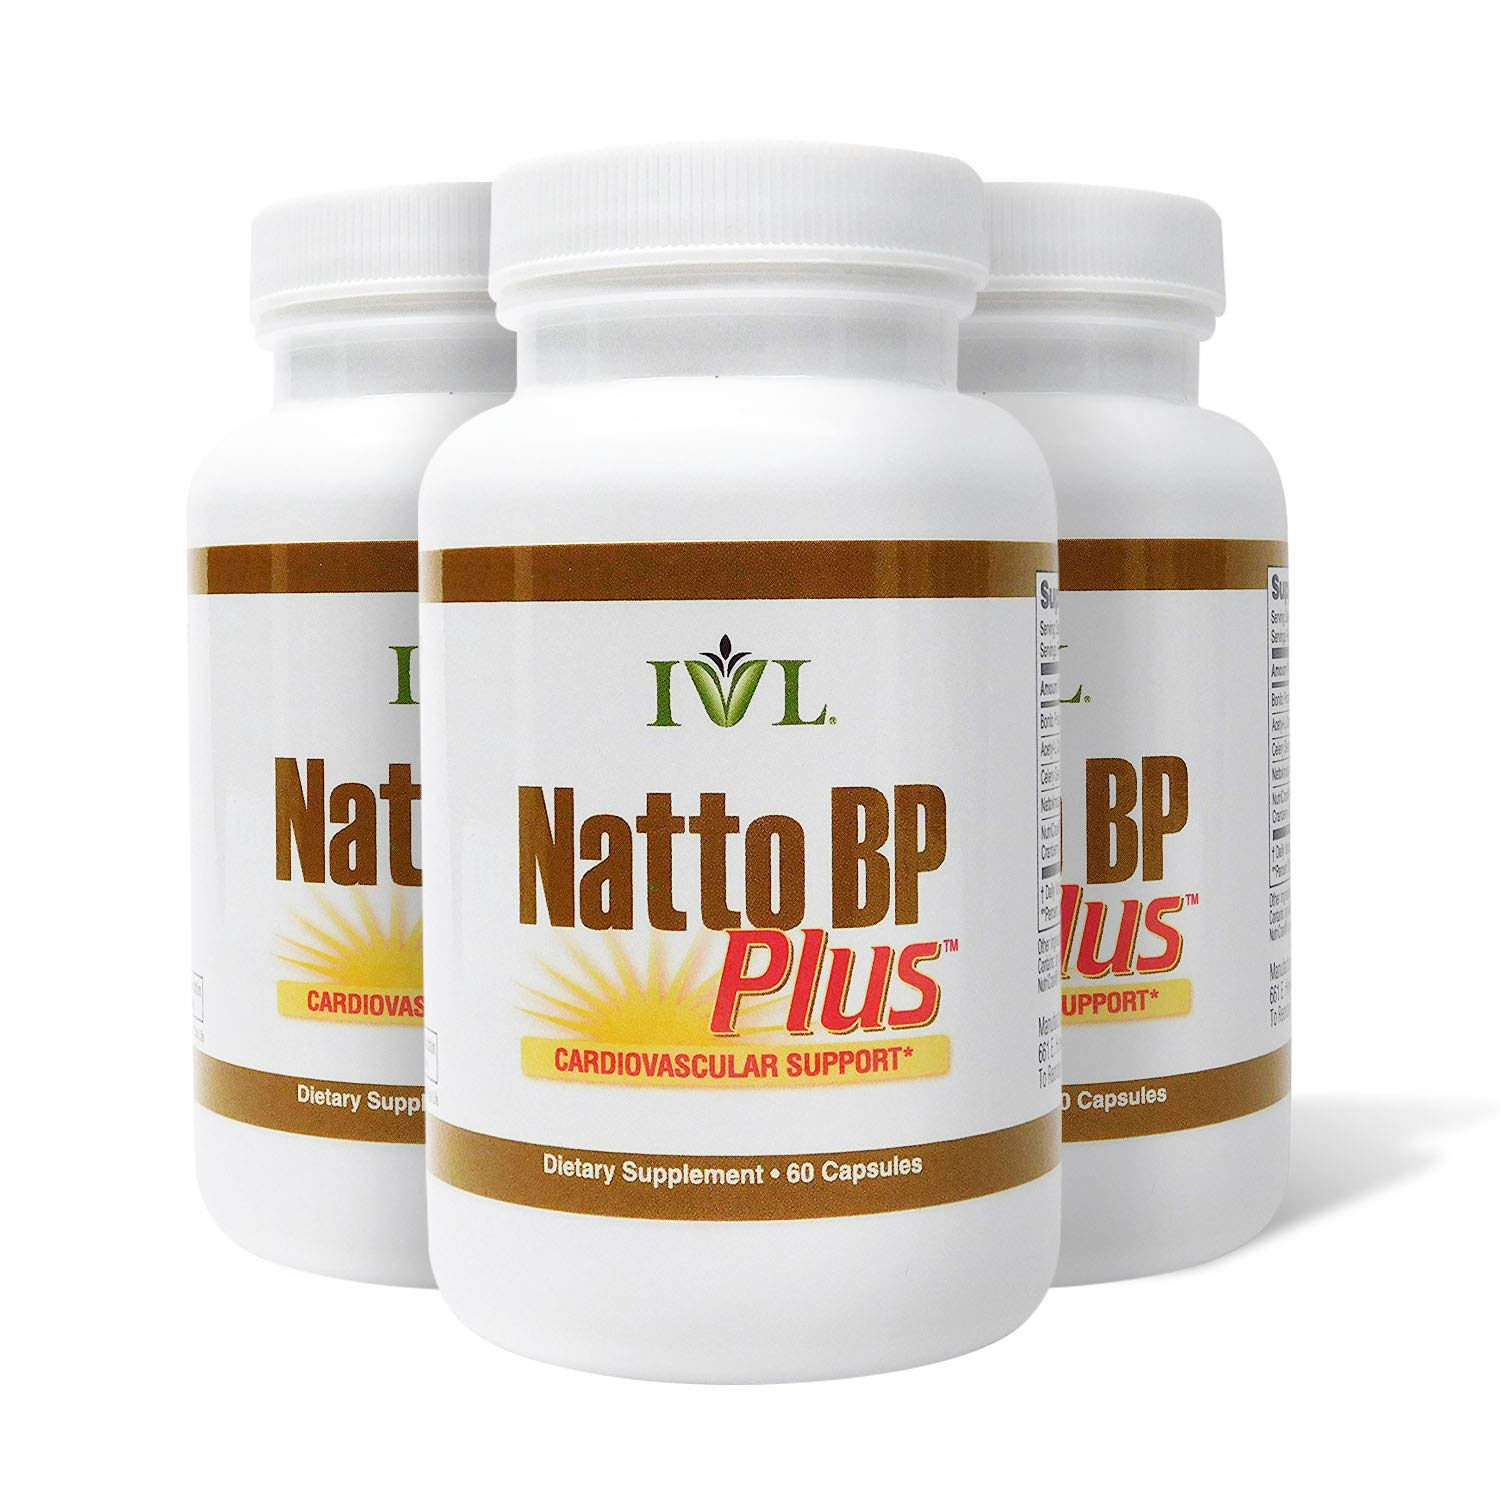 IVL NattoBP Plus Cardiovascular Support Supplement, 60 Capsules per Bottle (Pack of 3) by IVL